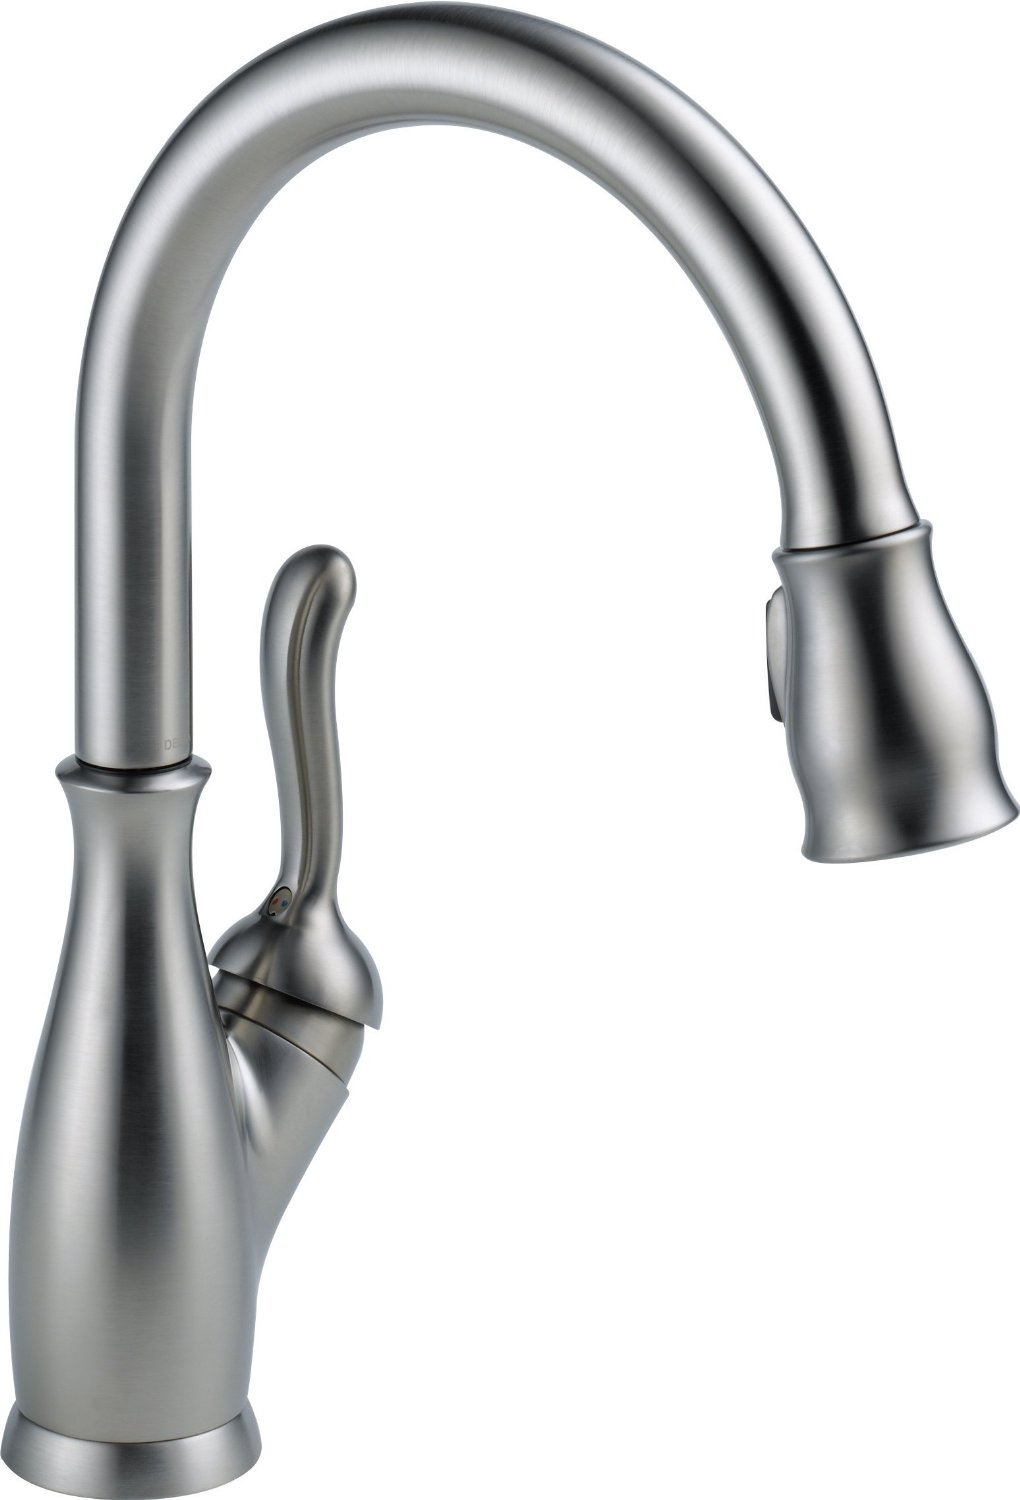 Ideas, delta one touch faucet troubleshooting delta one touch faucet troubleshooting delta kitchen faucets the complete guide top reviews 1020 x 1500  .